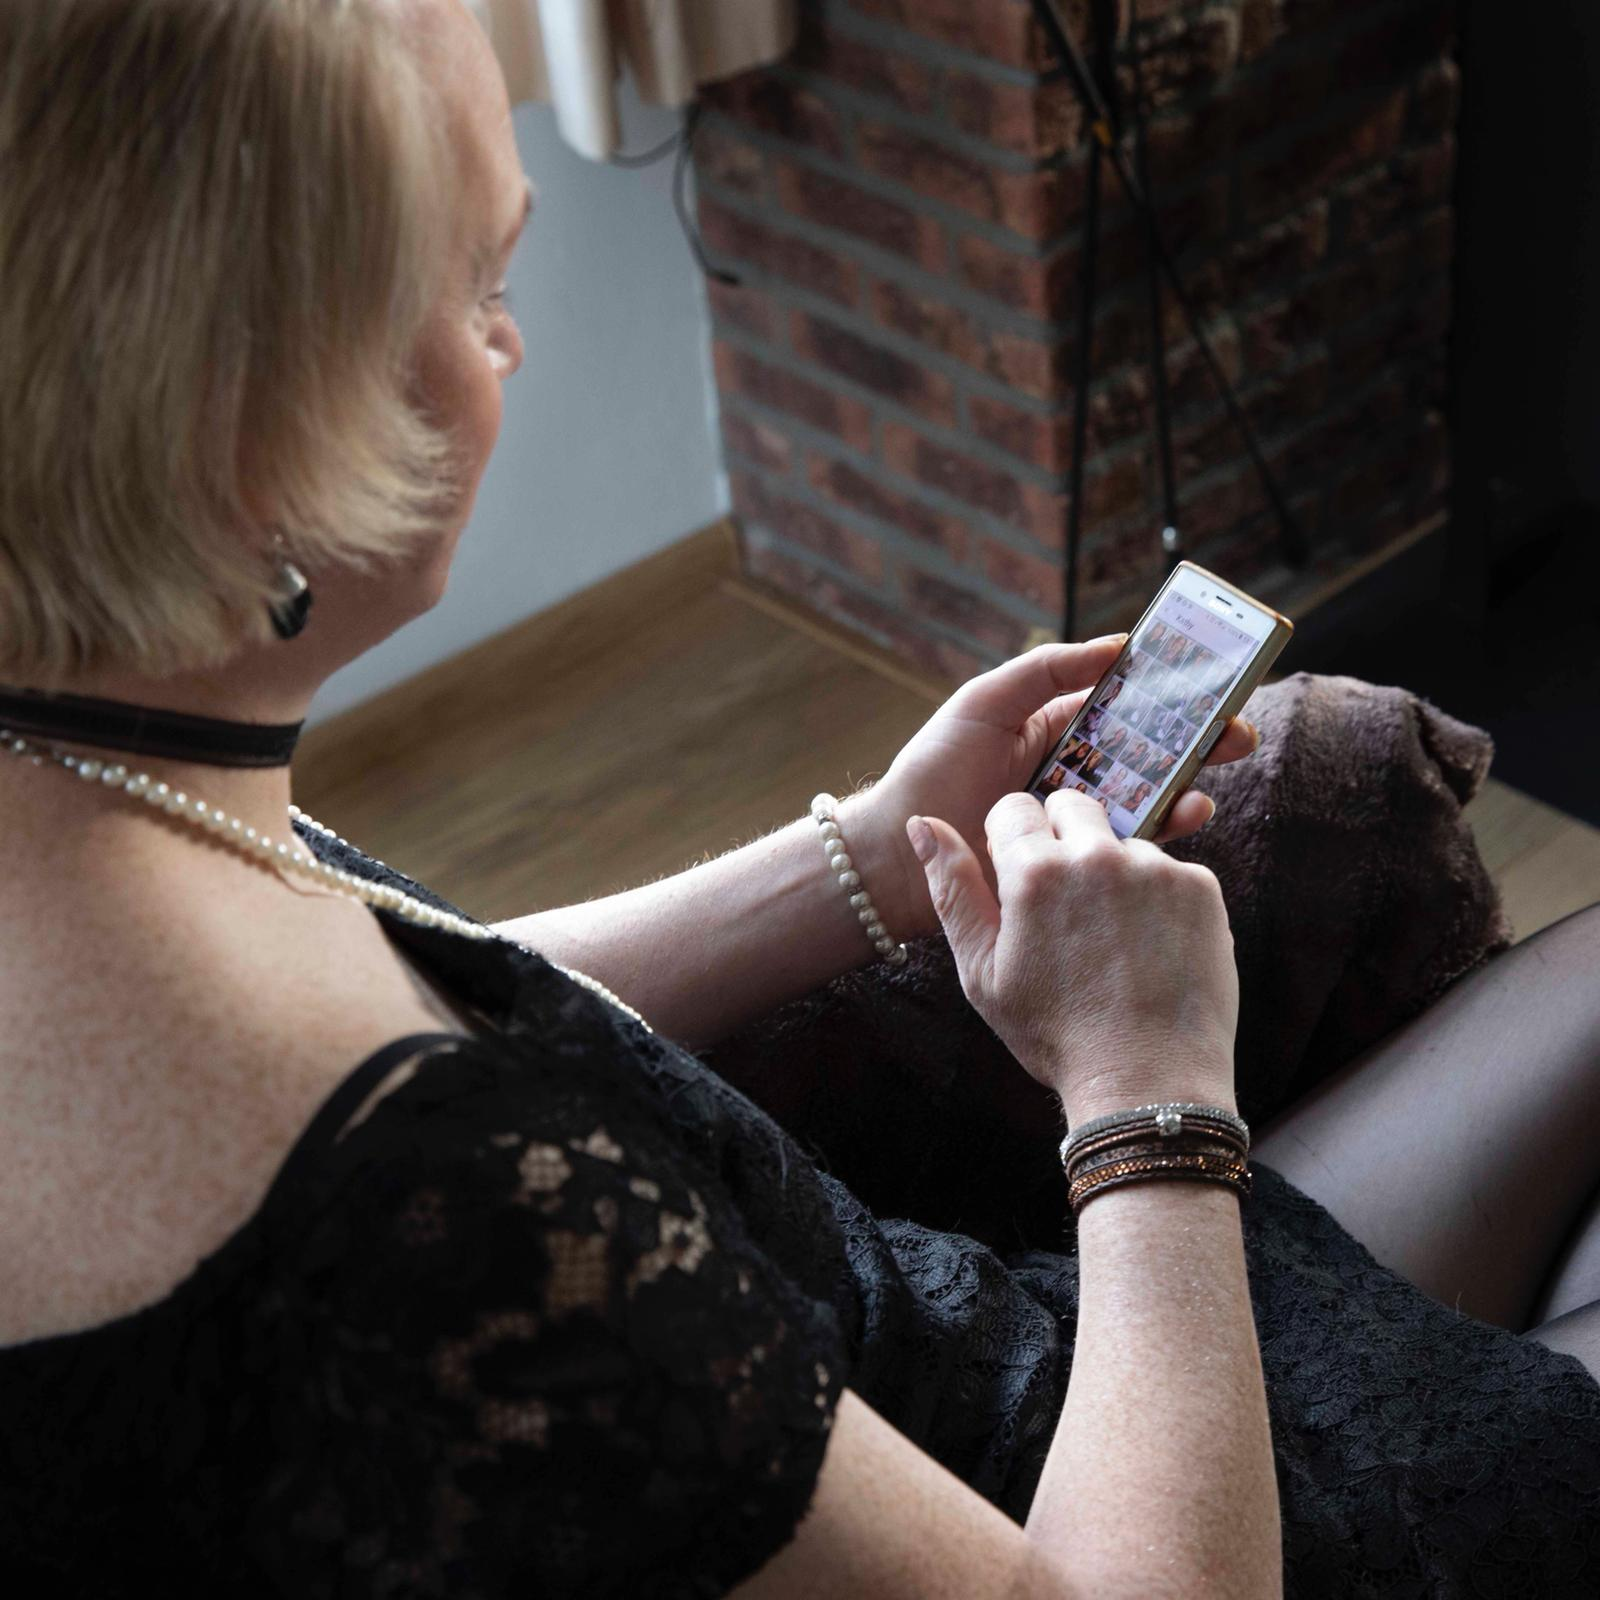 lady_kathy-bdsm-meesteres_smartphone